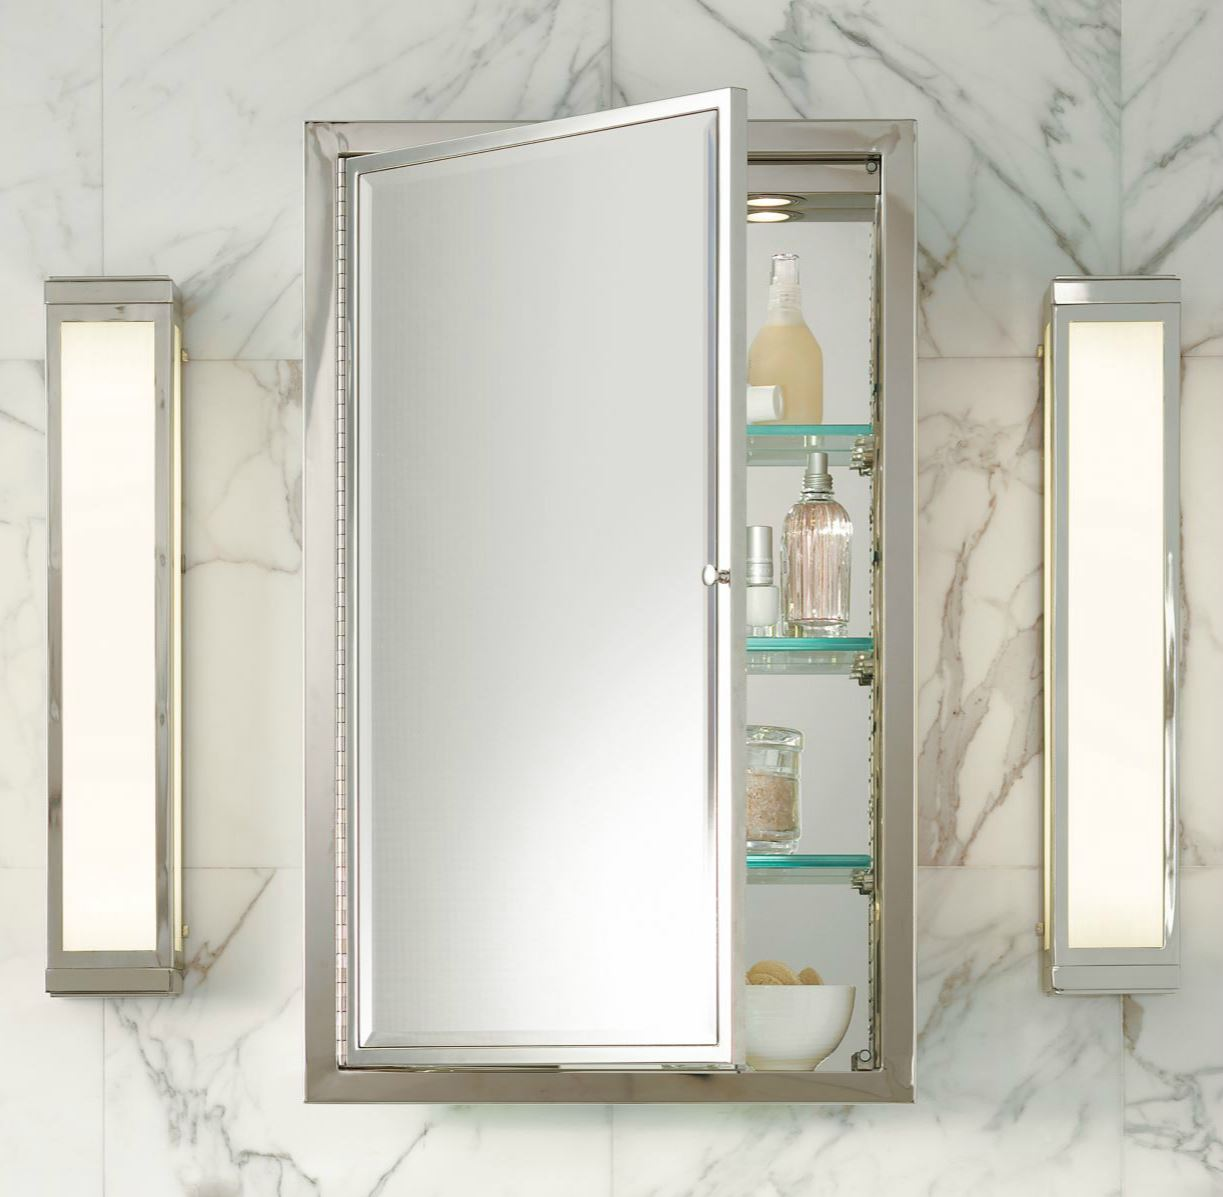 20 tips for an organized bathroom - Restoration hardware cabinets ...